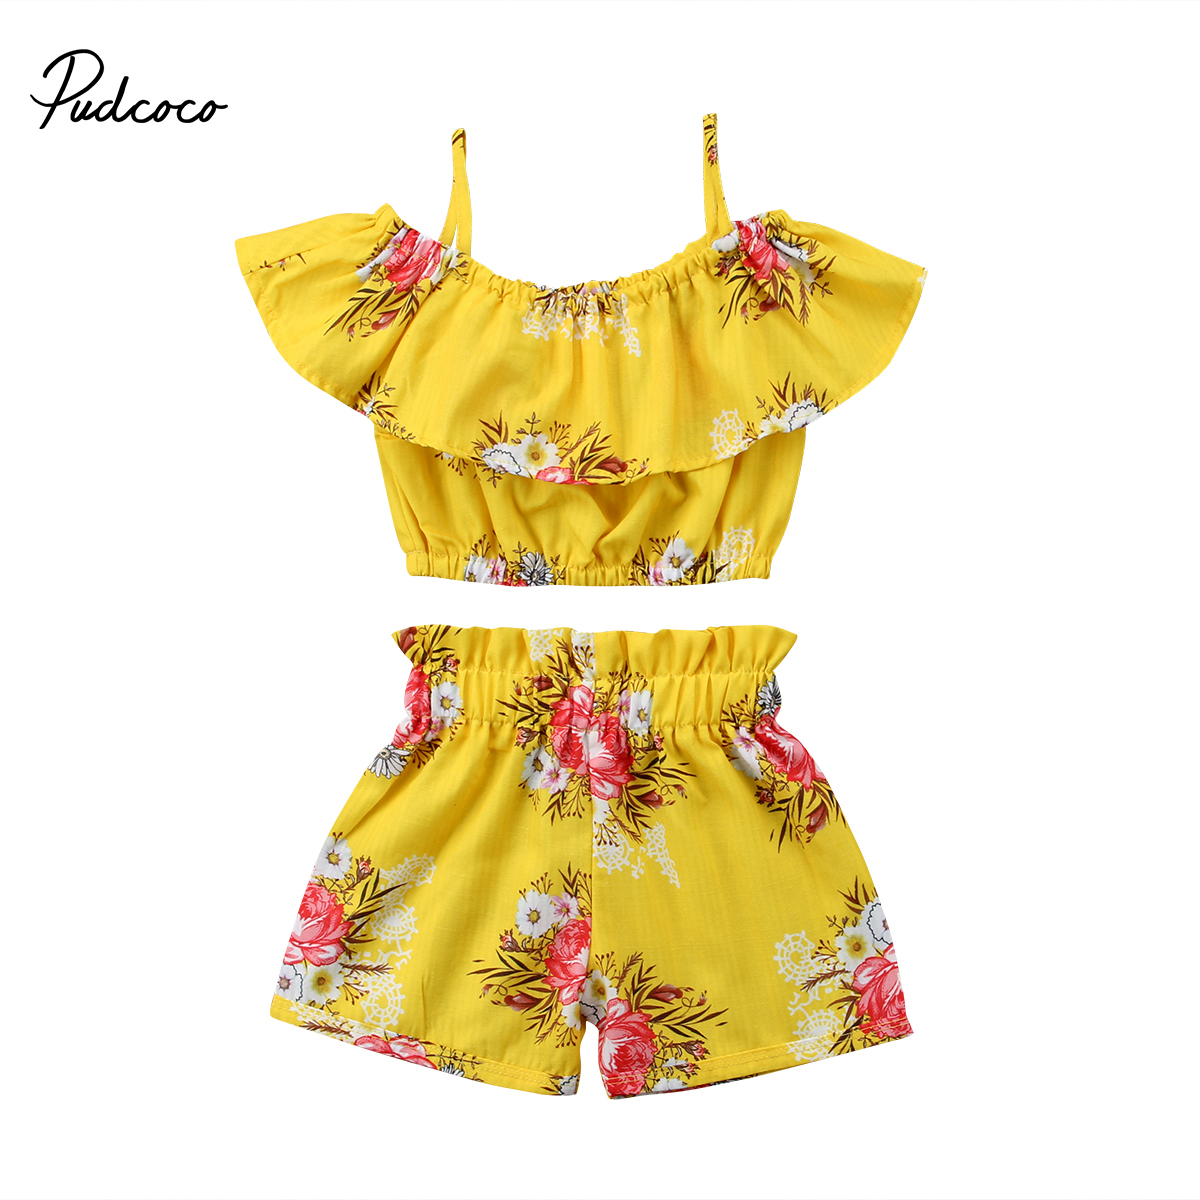 Pudcoco Toddler Kids Baby Girl Floral Outfits T-shirt Tops+Pants 2PCS Summer Clothes Set